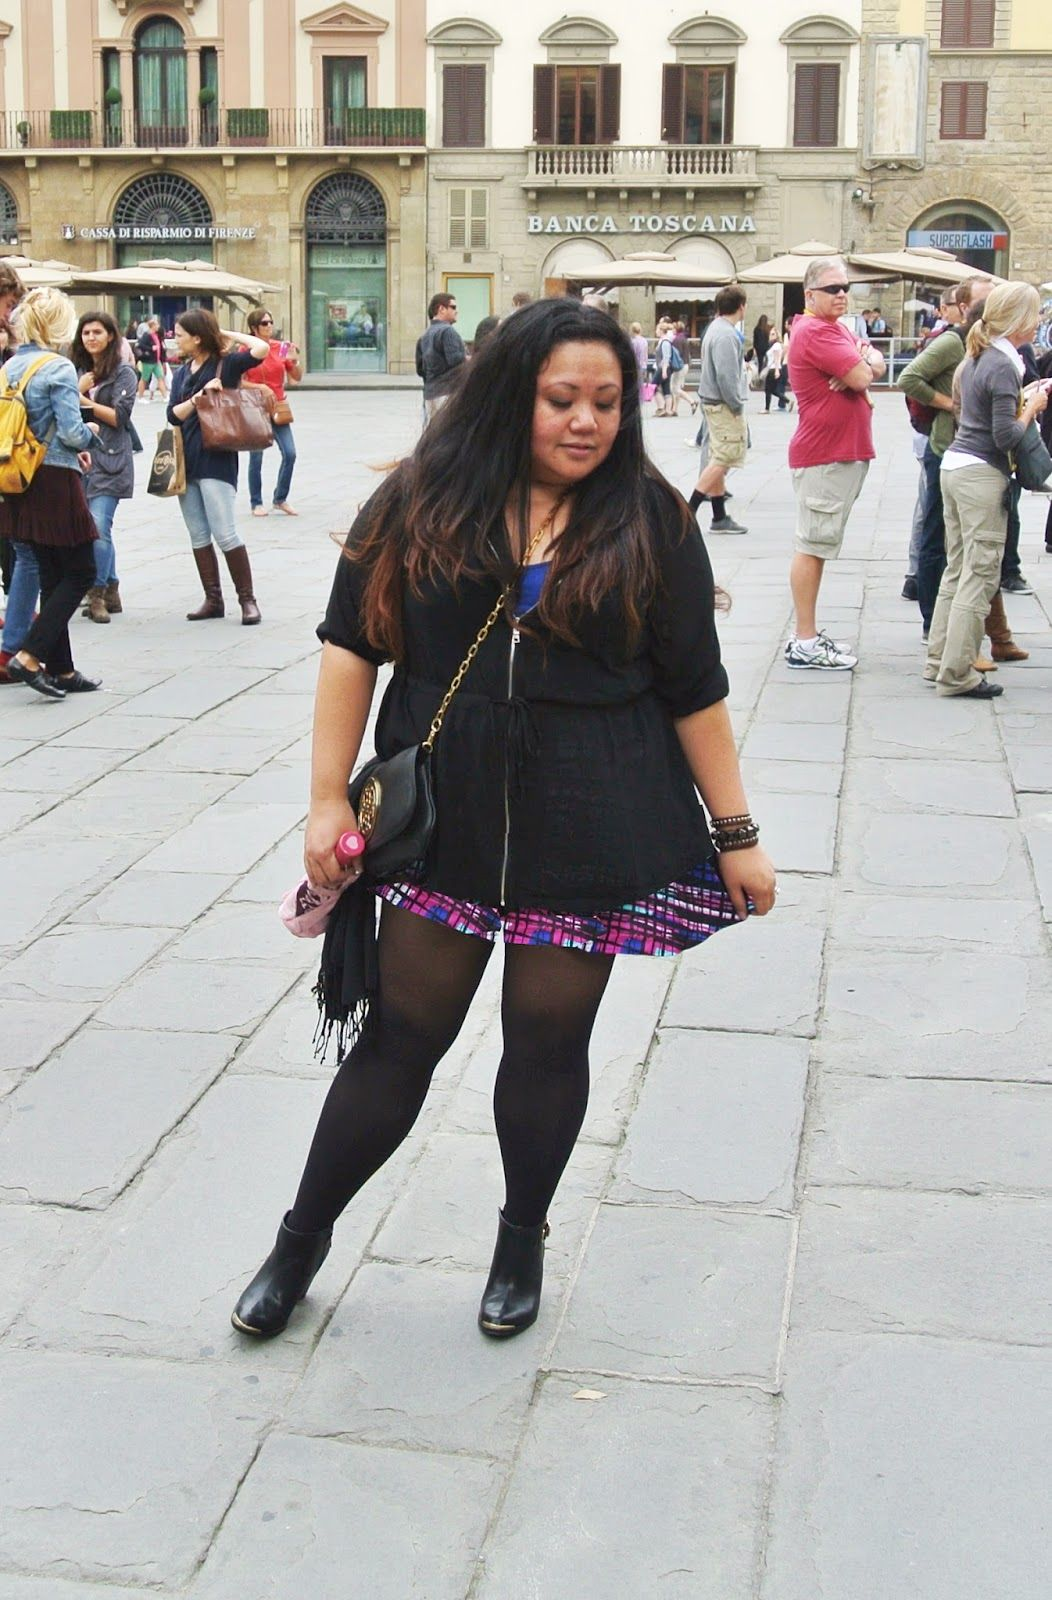 fe8b67505d9 Life   Glamour. Plus size outfit of the day. Wore during day trip in  Florence